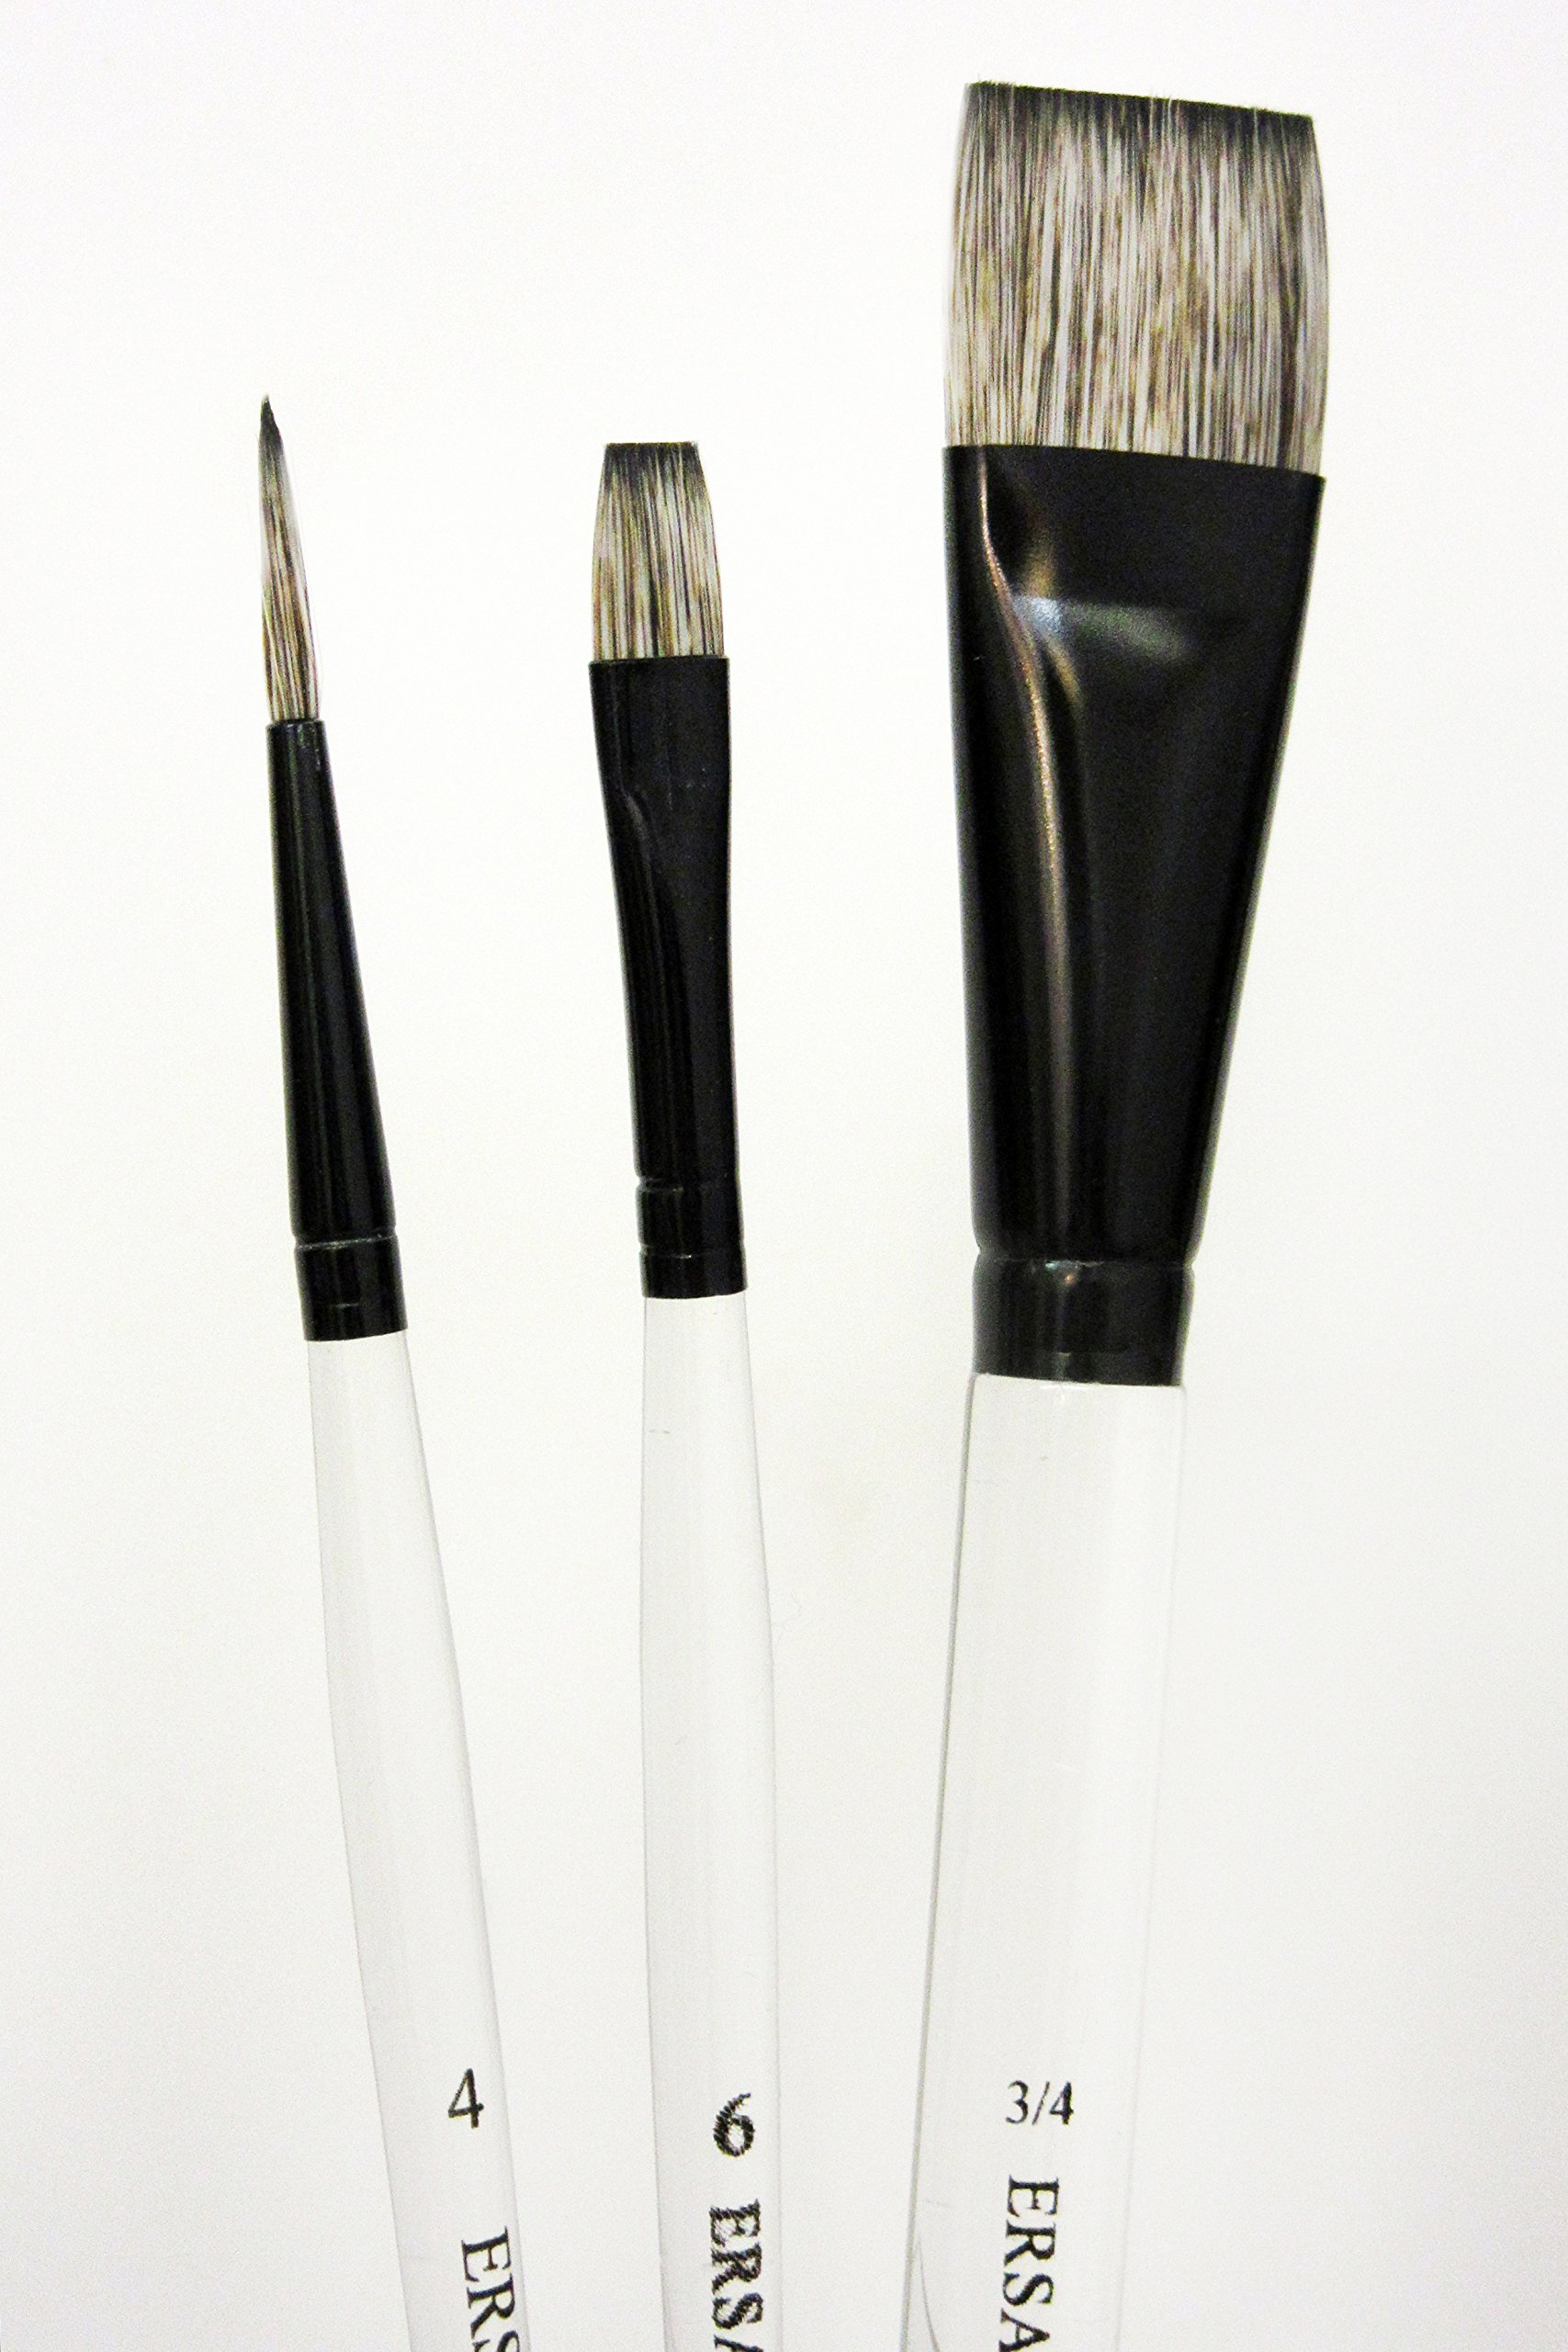 Beginner Brush Set for Paint It Simply (Short Handle) by Jansen Art Studio